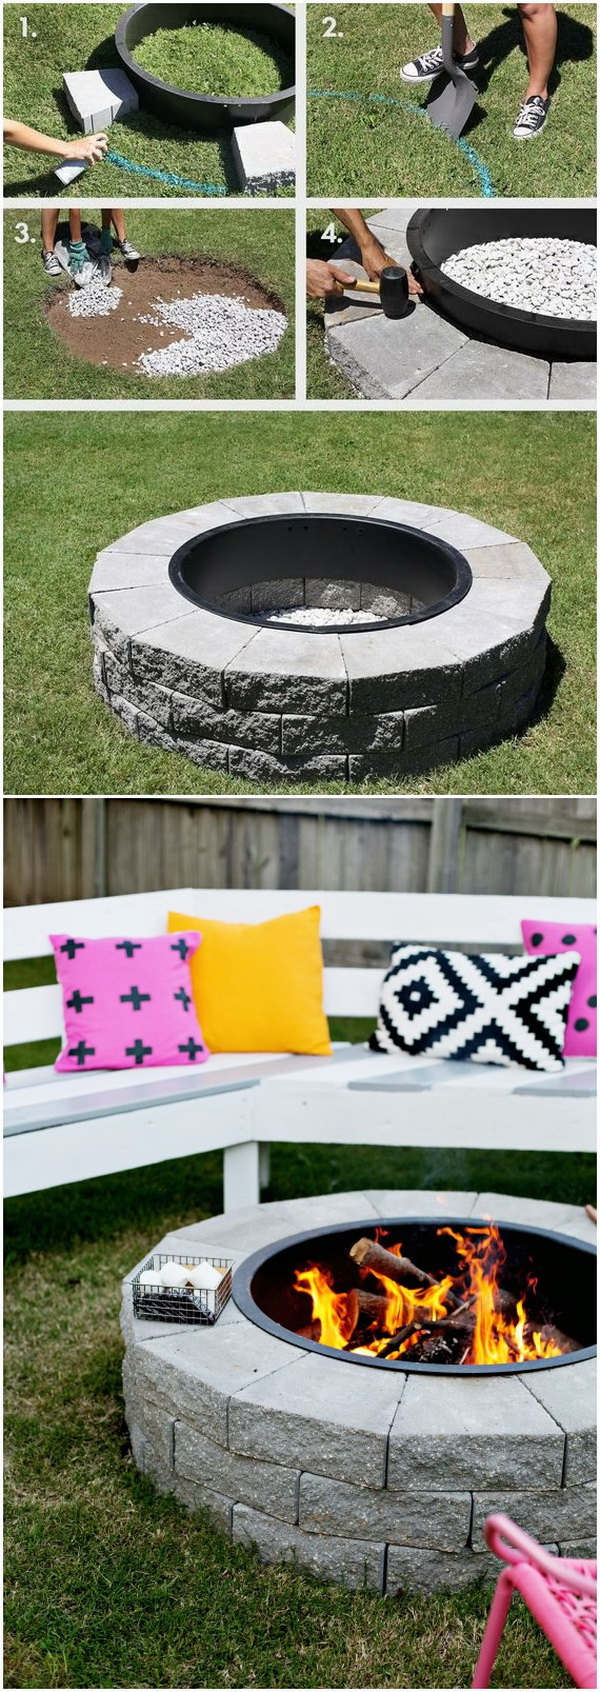 20 DIY Fire Pits for Your Backyard with Tutorials ... on Backyard Fire Pit Ideas Diy id=95764